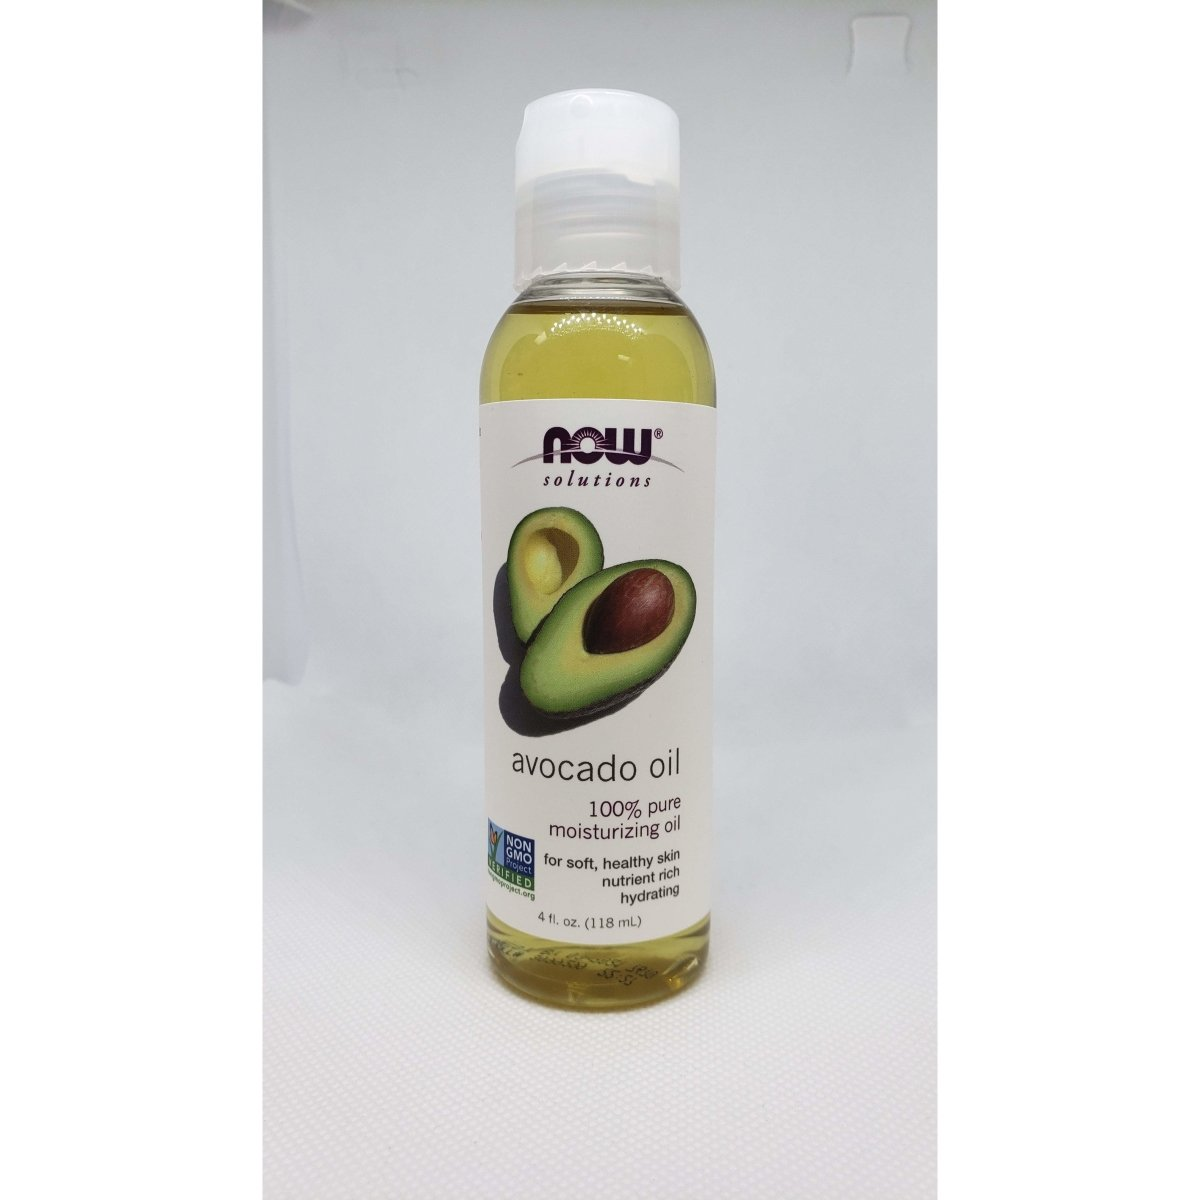 Now Solution - Avocado Oil - 100% Pure Moisturizing Oil - For Soft, Healthy Skin - Nutrient Rich - Hydrating - 4oz